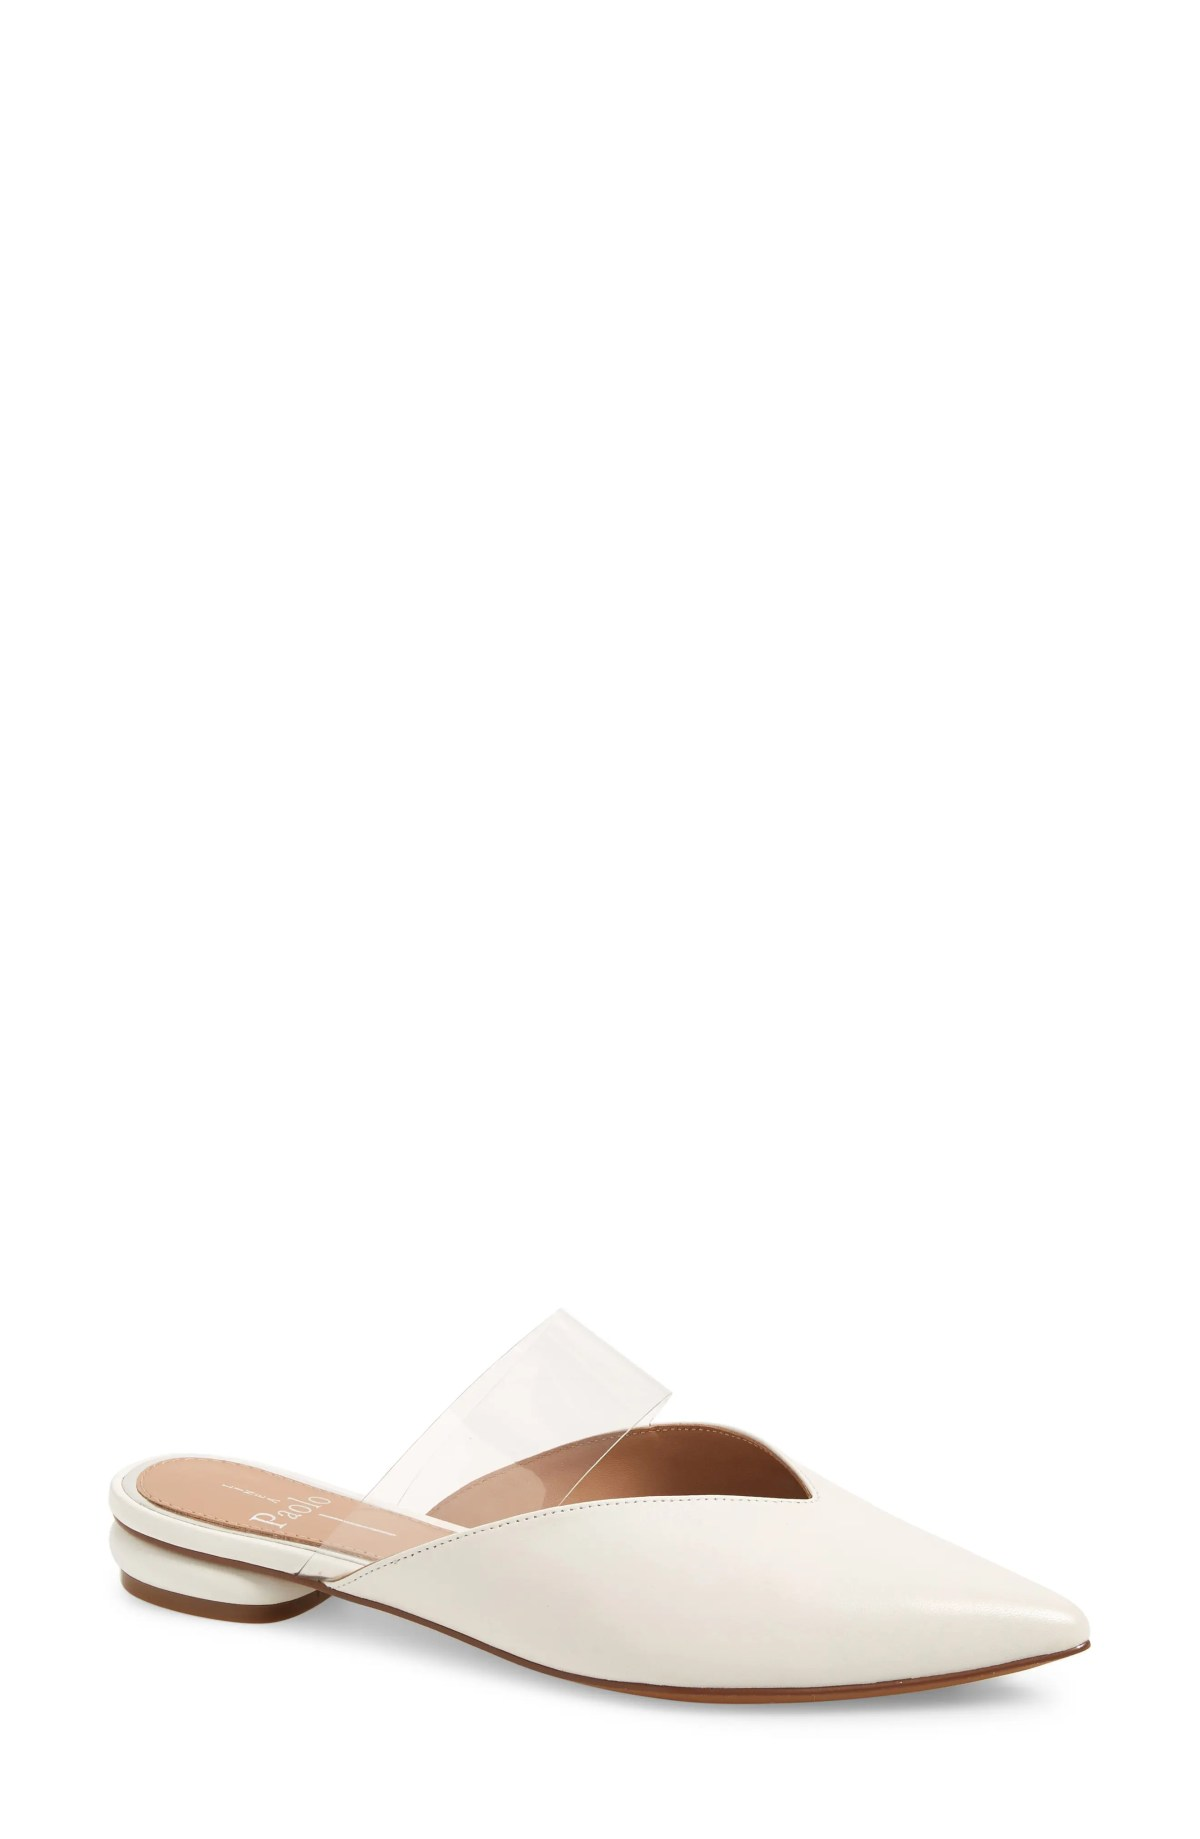 LINEA PAOLO Abril Pointed Toe Mule, Main, color, EGGSHELL LEATHER